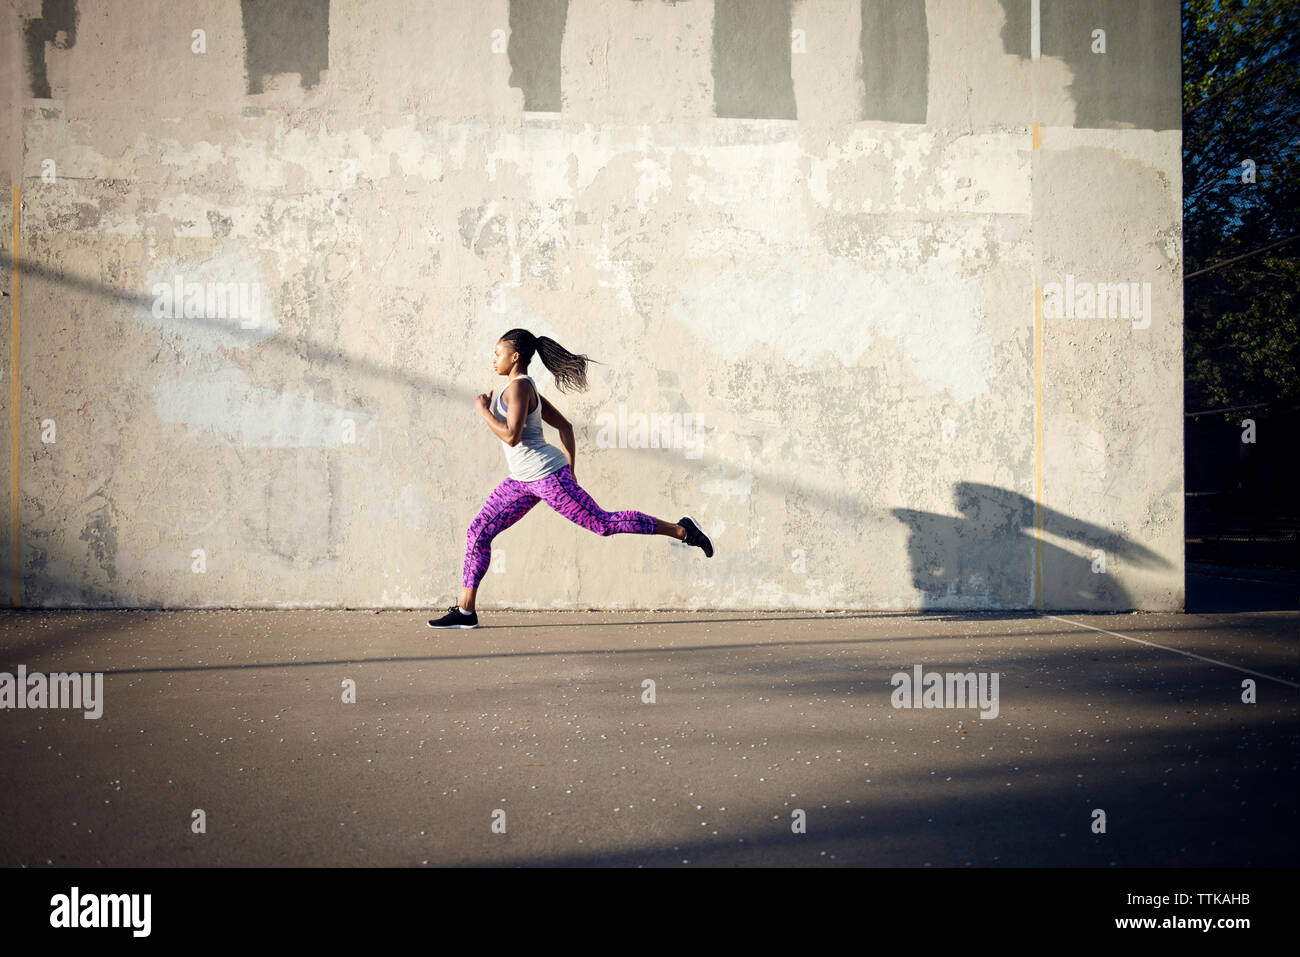 Woman jogging on street by wall - Stock Image